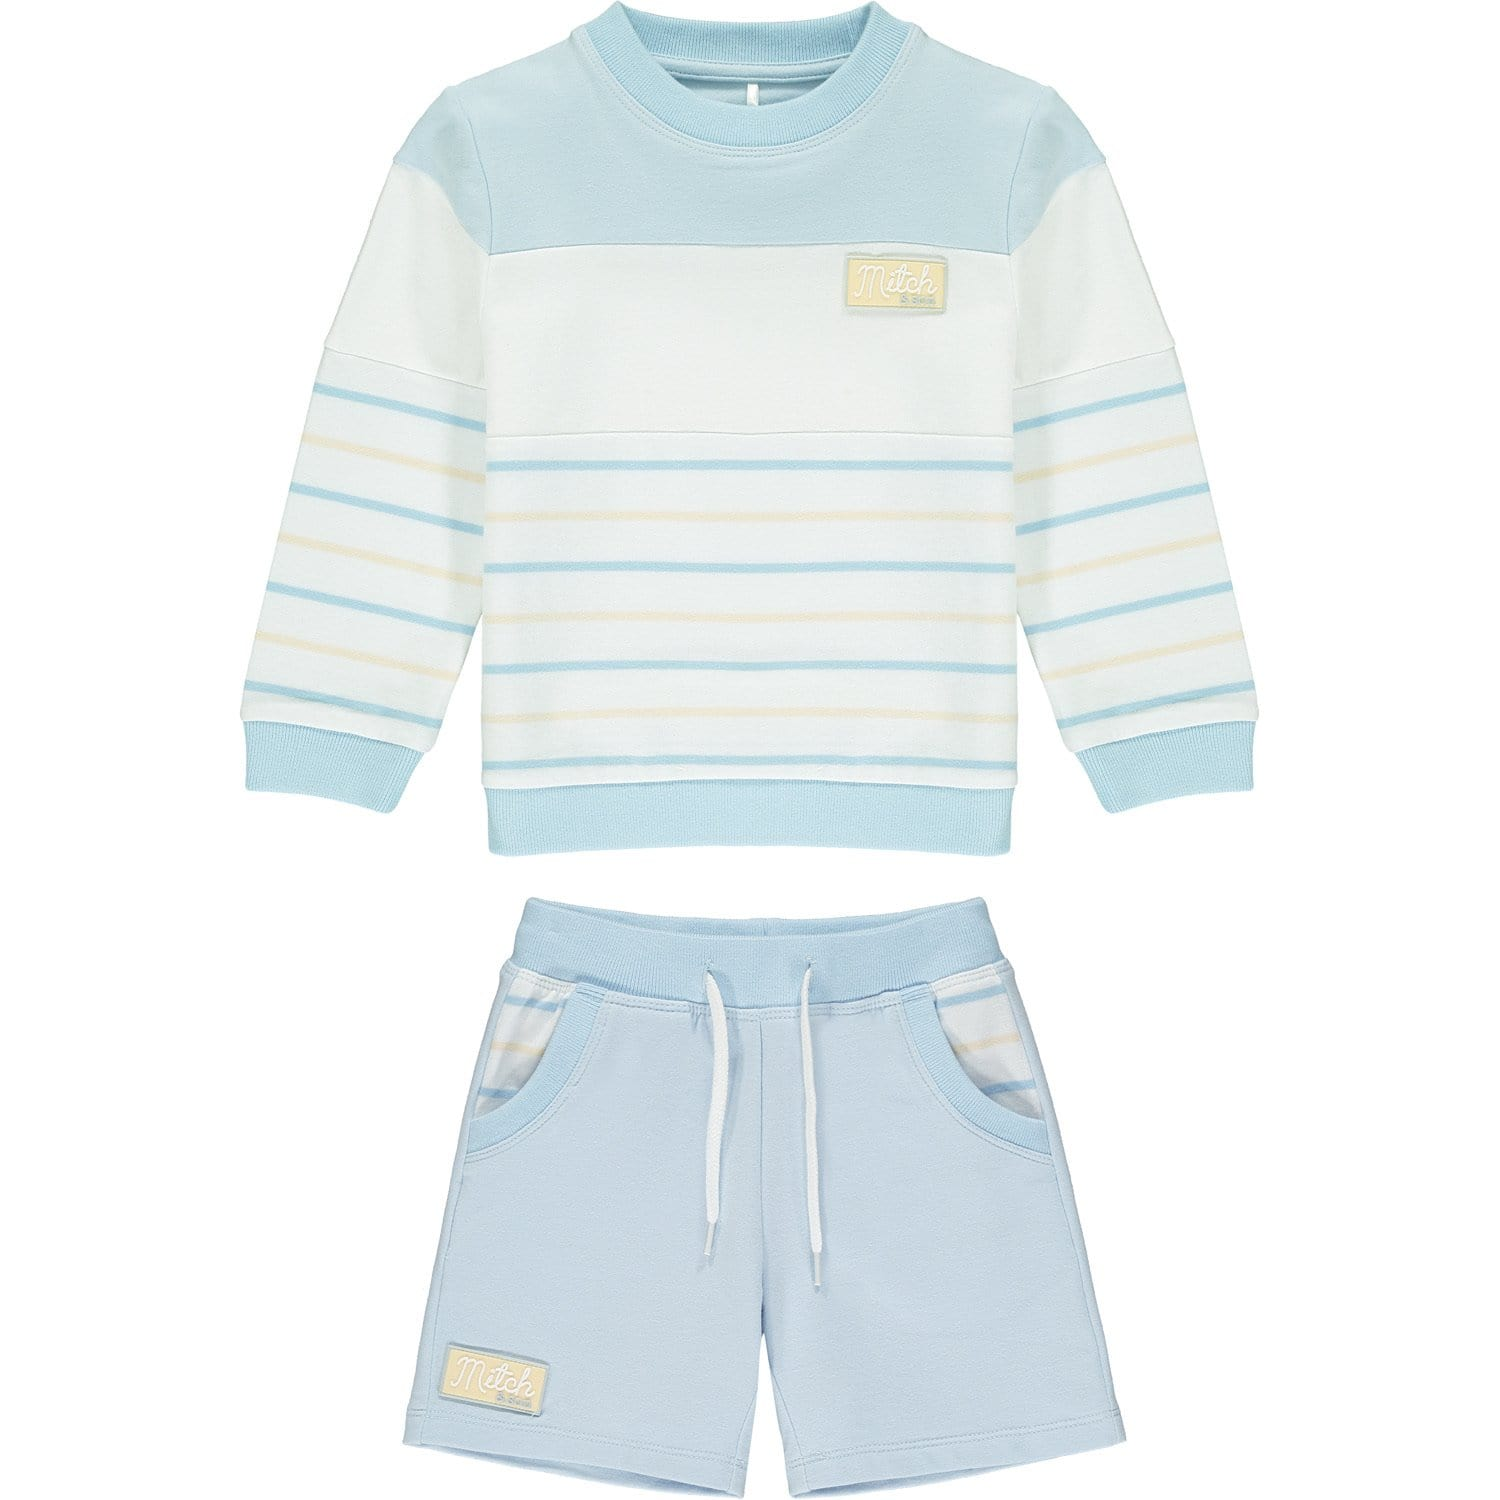 MITCH & SON PALE BLUE STRIPE SWEATSHIRT SET MS21117 BELTANE